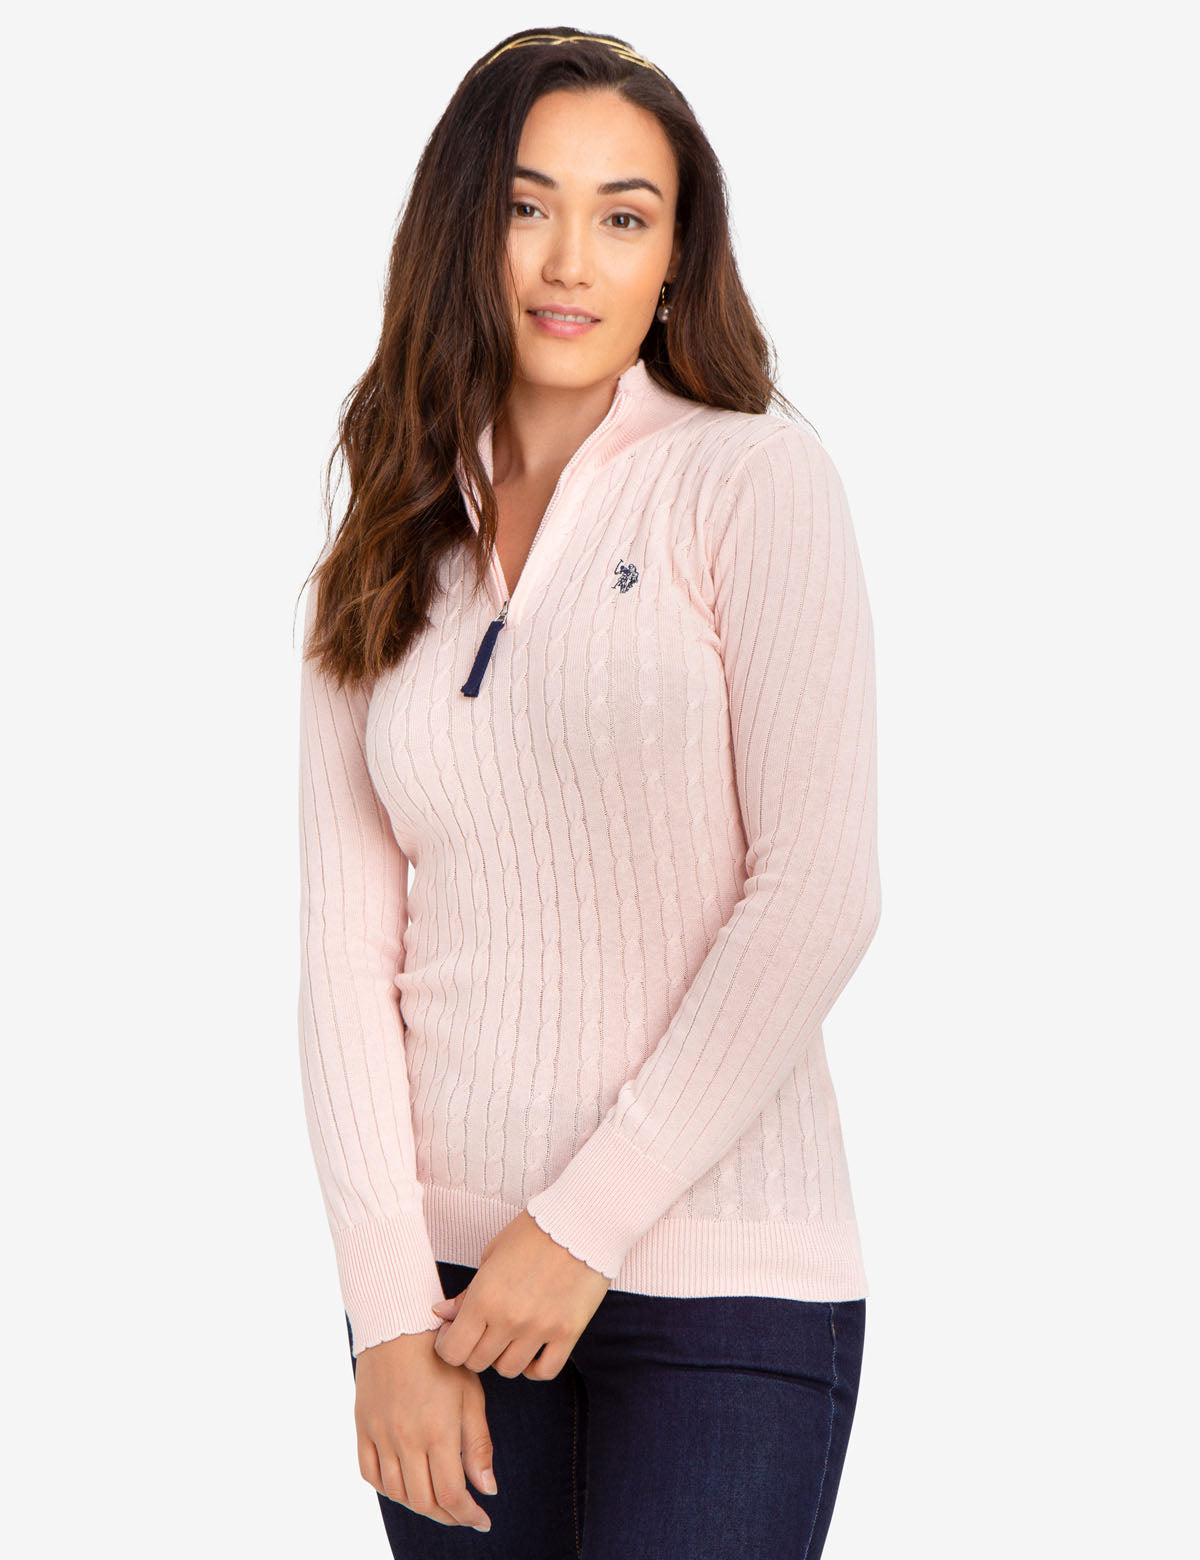 CABLE KNIT SWEATER WITH QUARTER ZIP